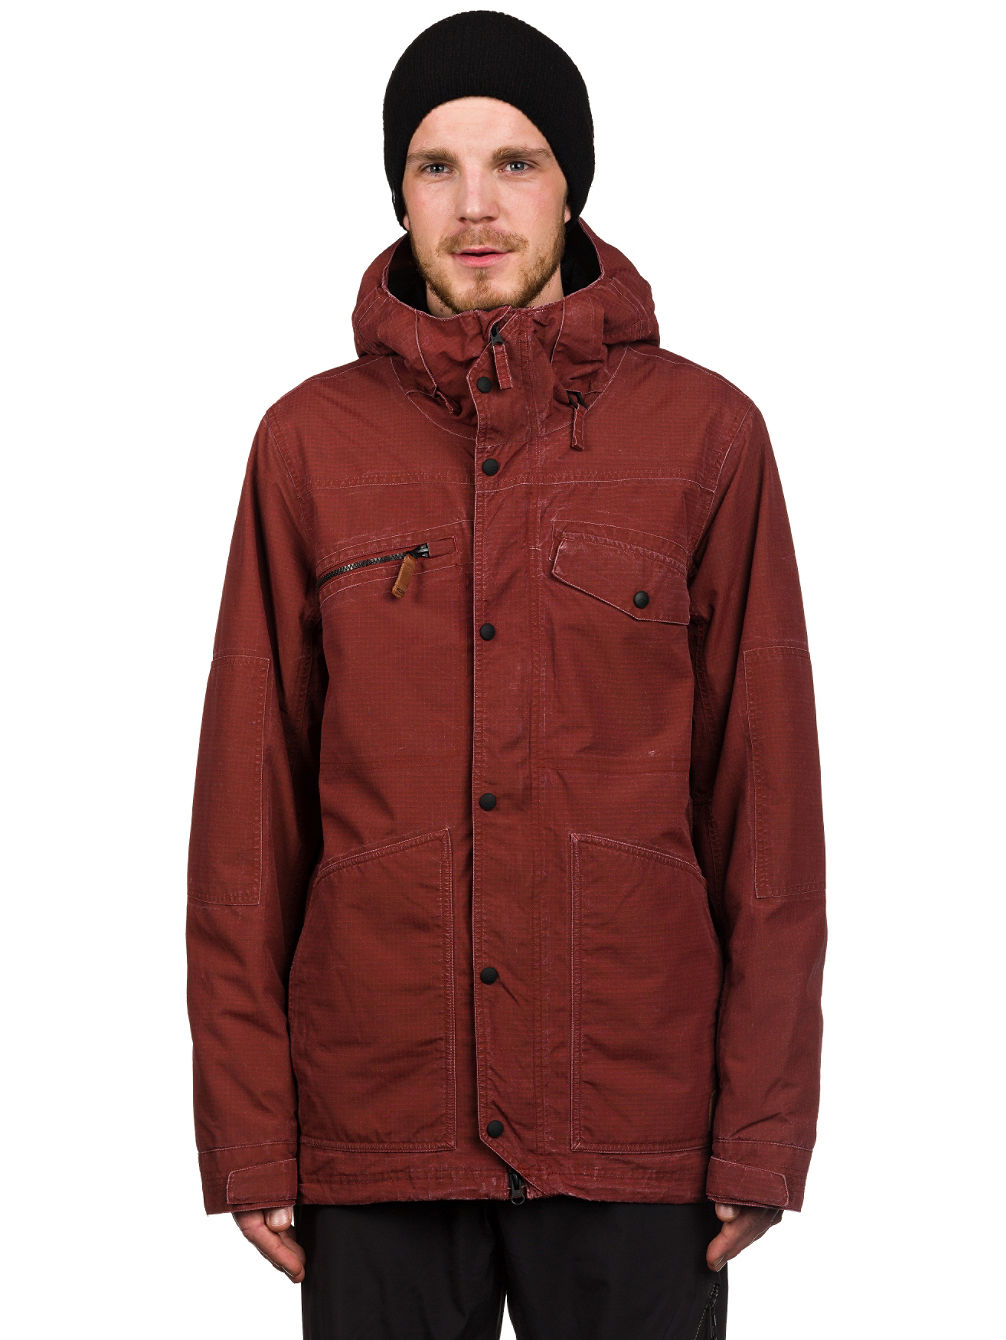 Timber BioZone Shell Jacket